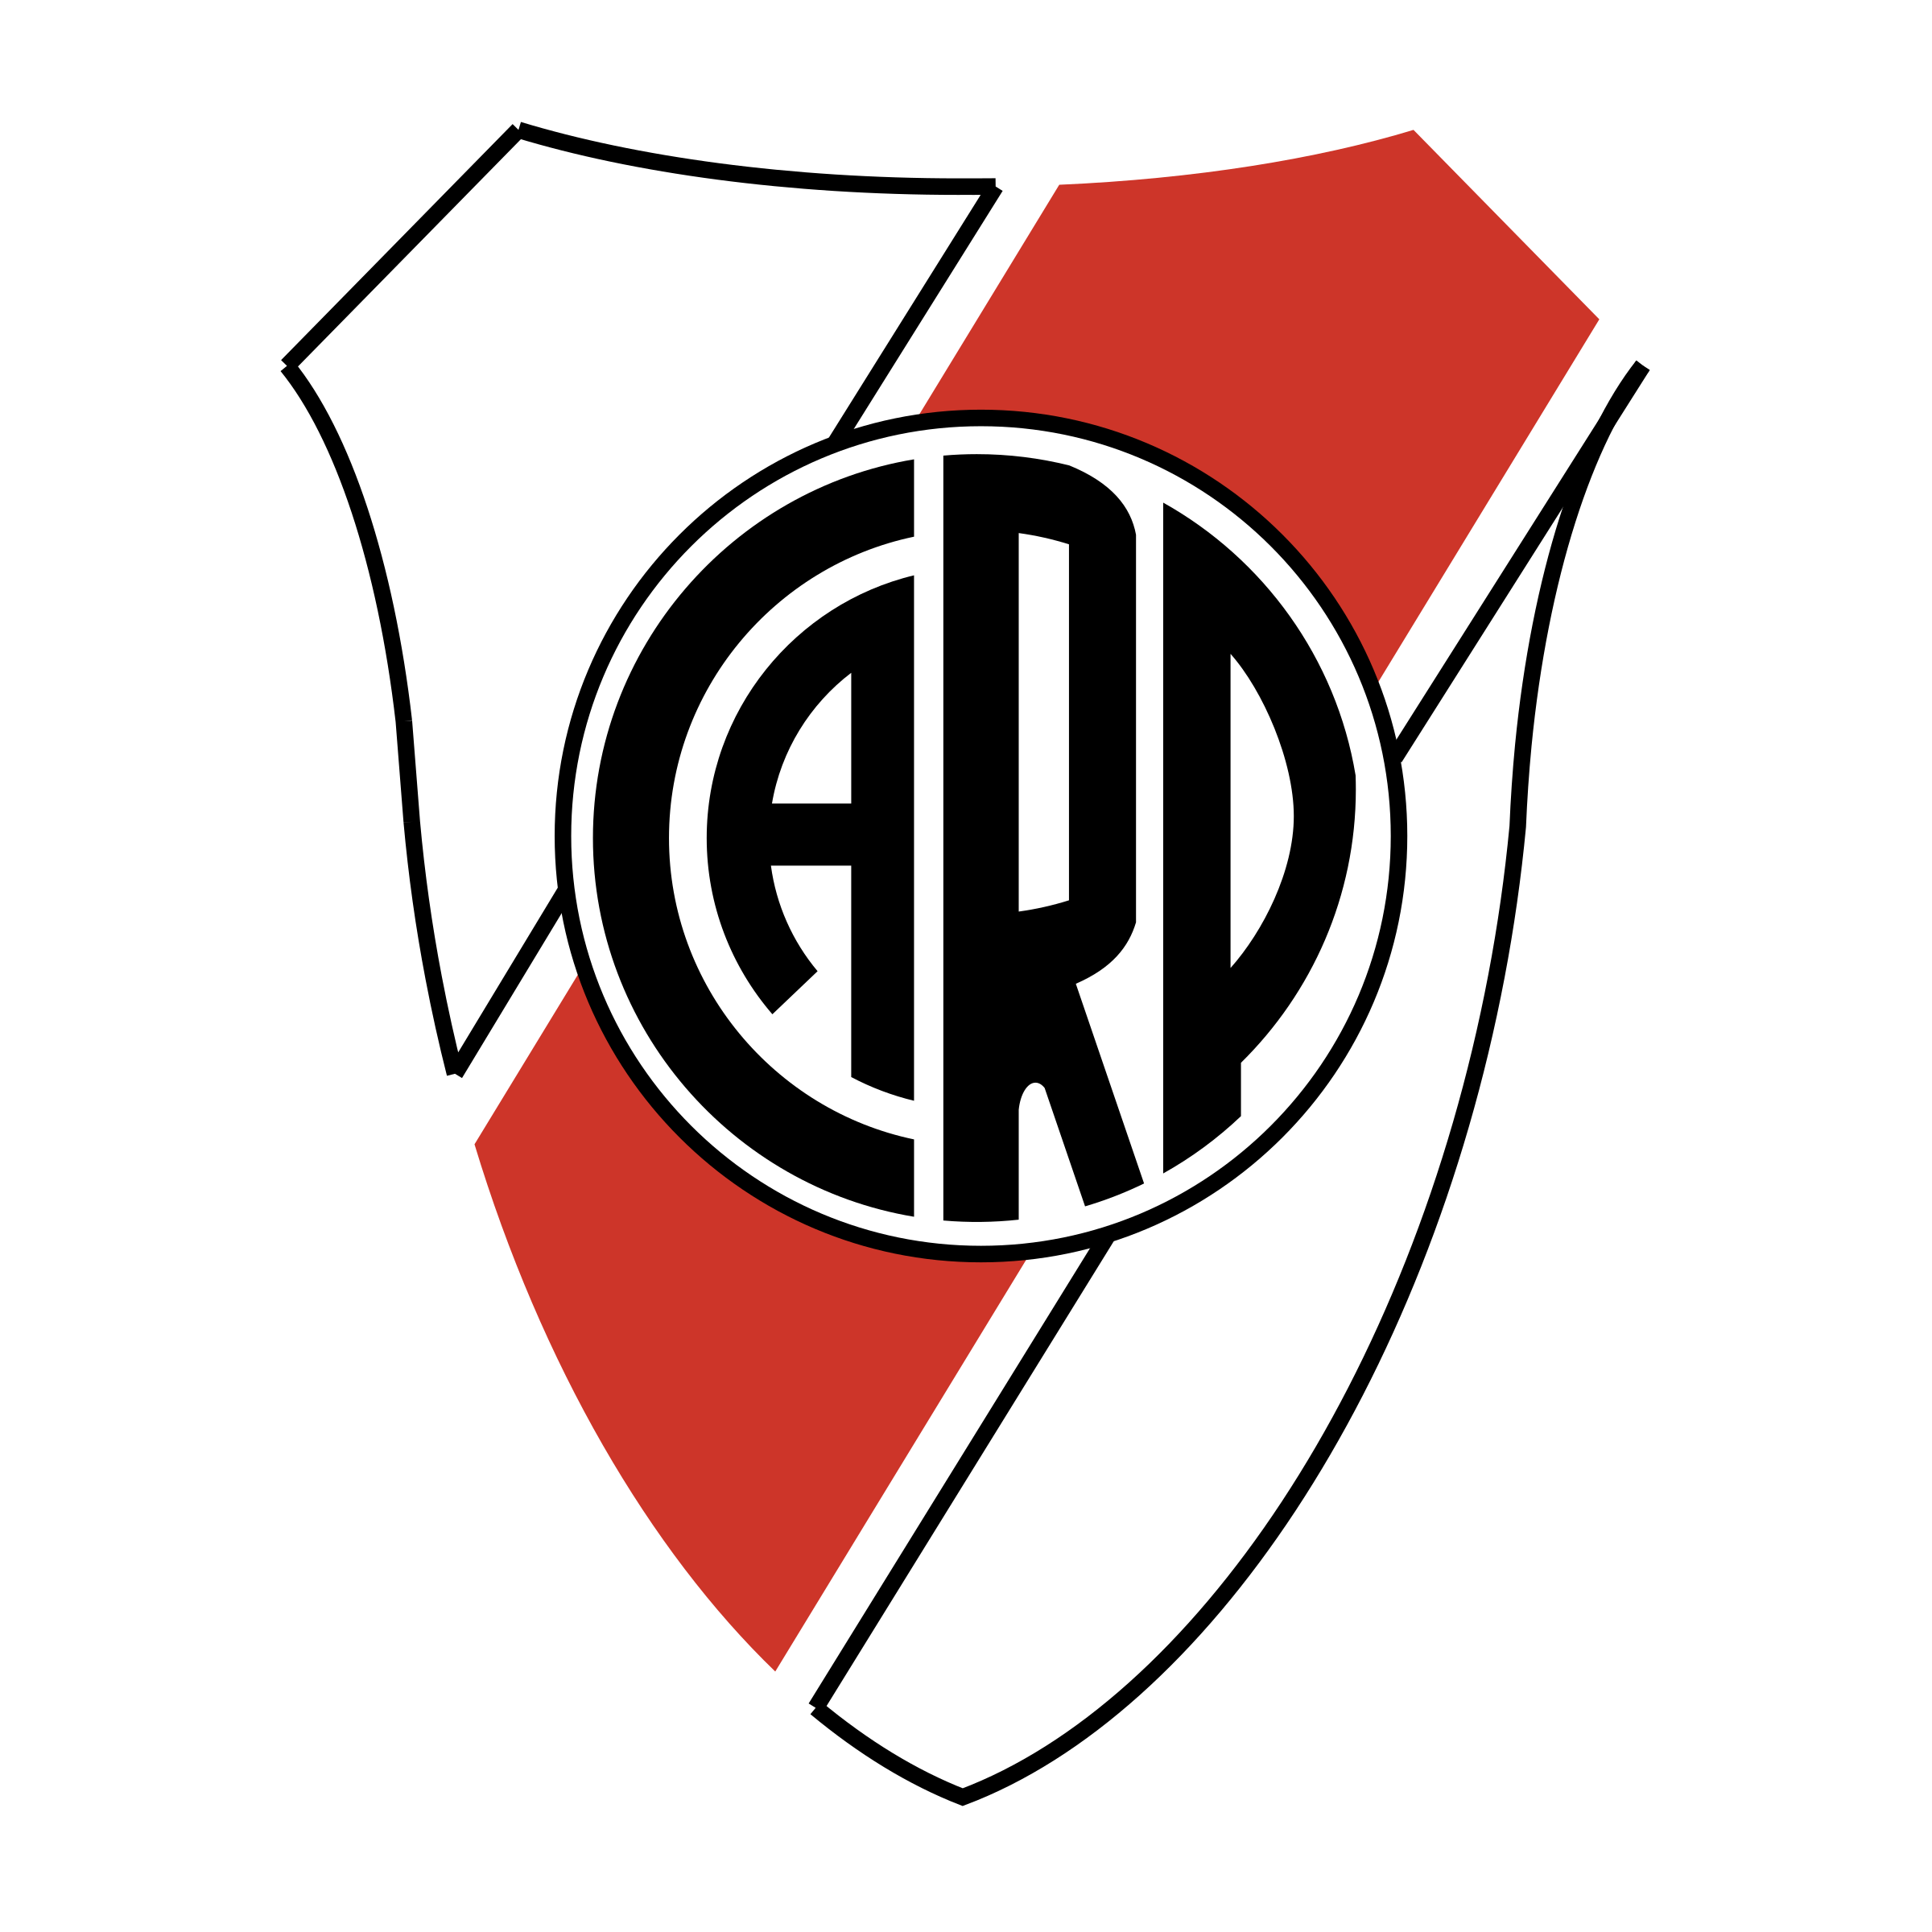 River plate png. Club atletico logo transparent